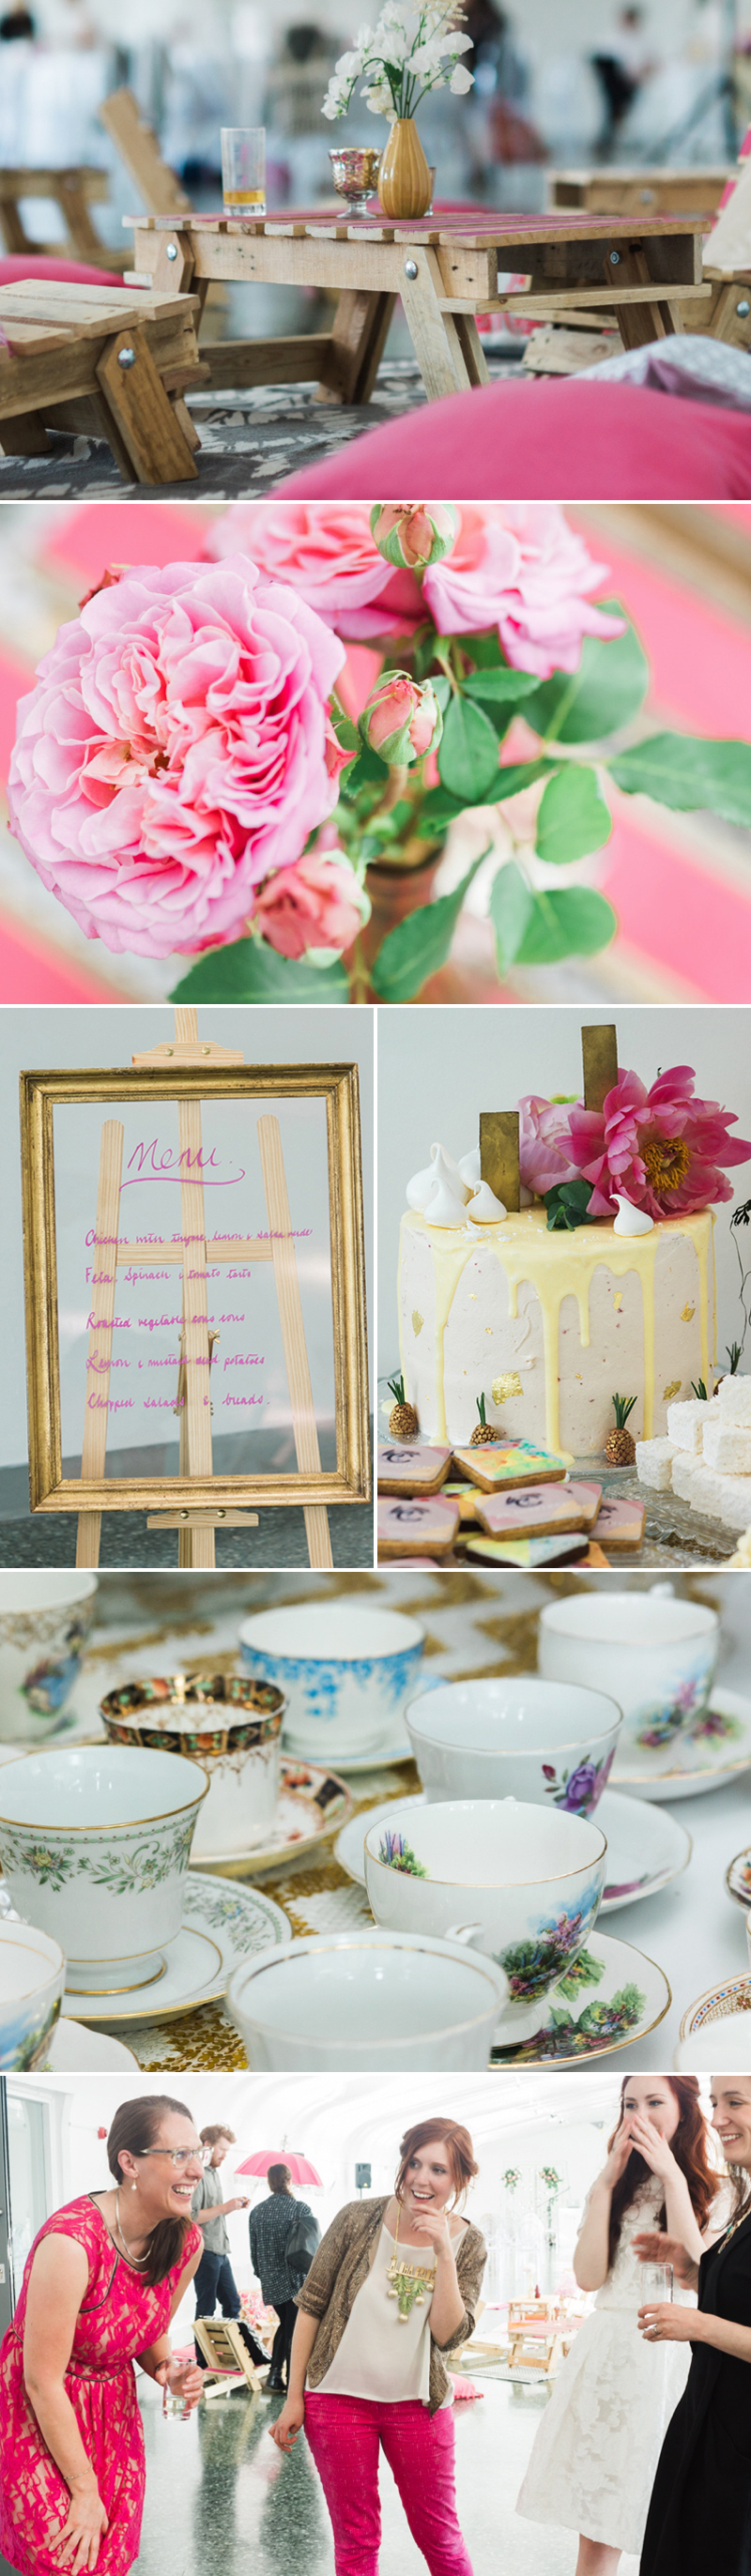 creative-workshop-for-wedding-industry-the-hub-003